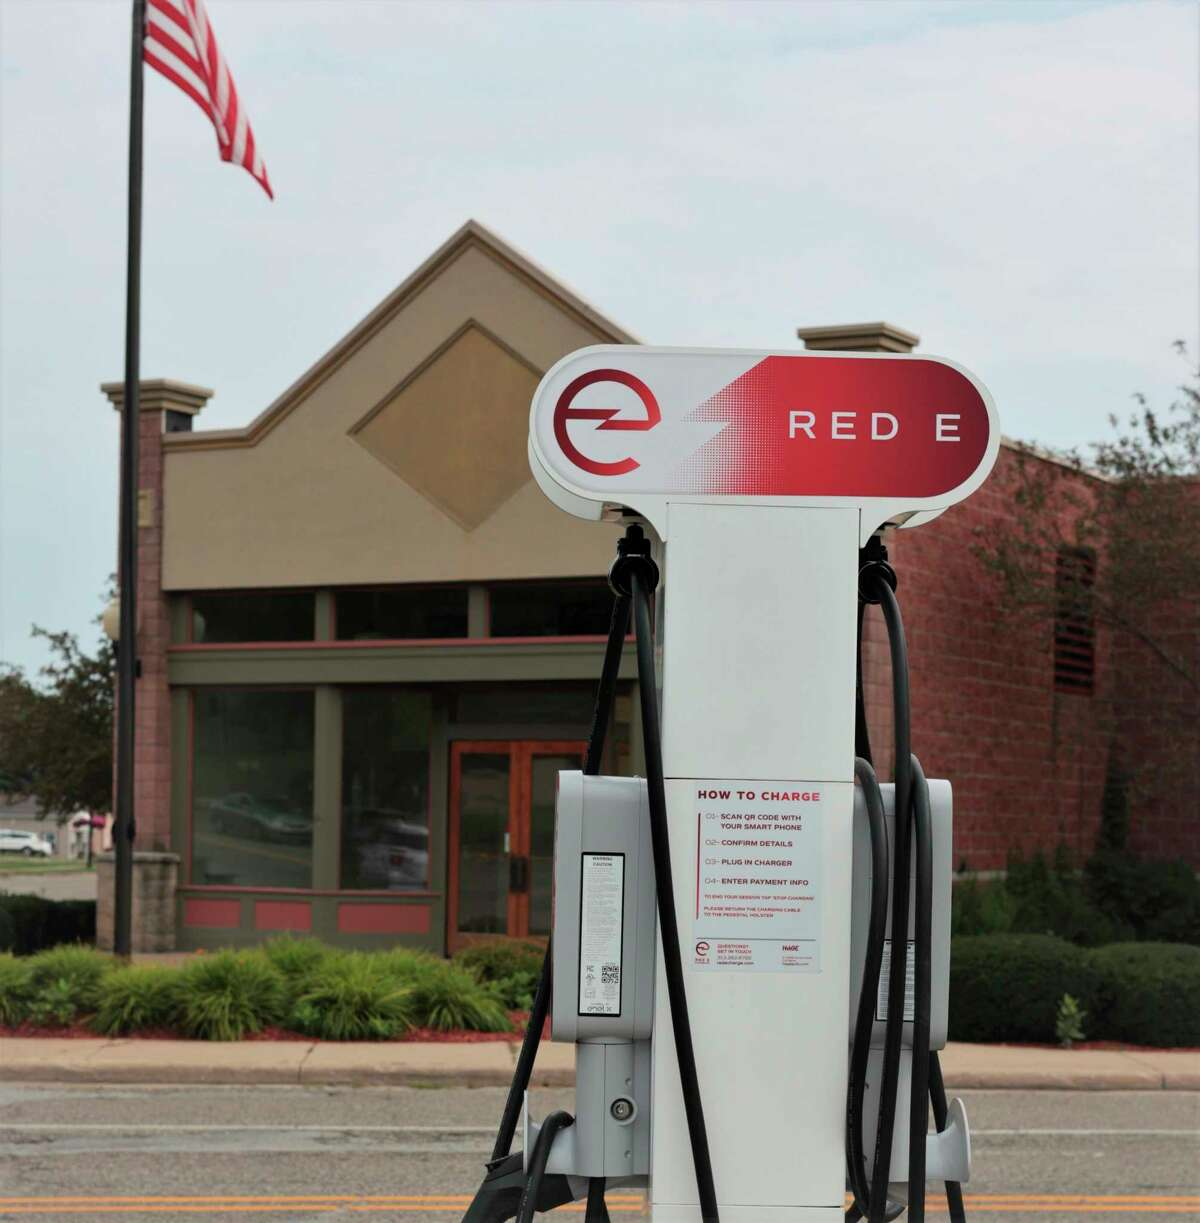 A Red E Charging Station is situated at the parking lot on Washington Street in downtown Manistee across the street from NorthChannelBrewing Company. (Jeff Zide/News Advocate)